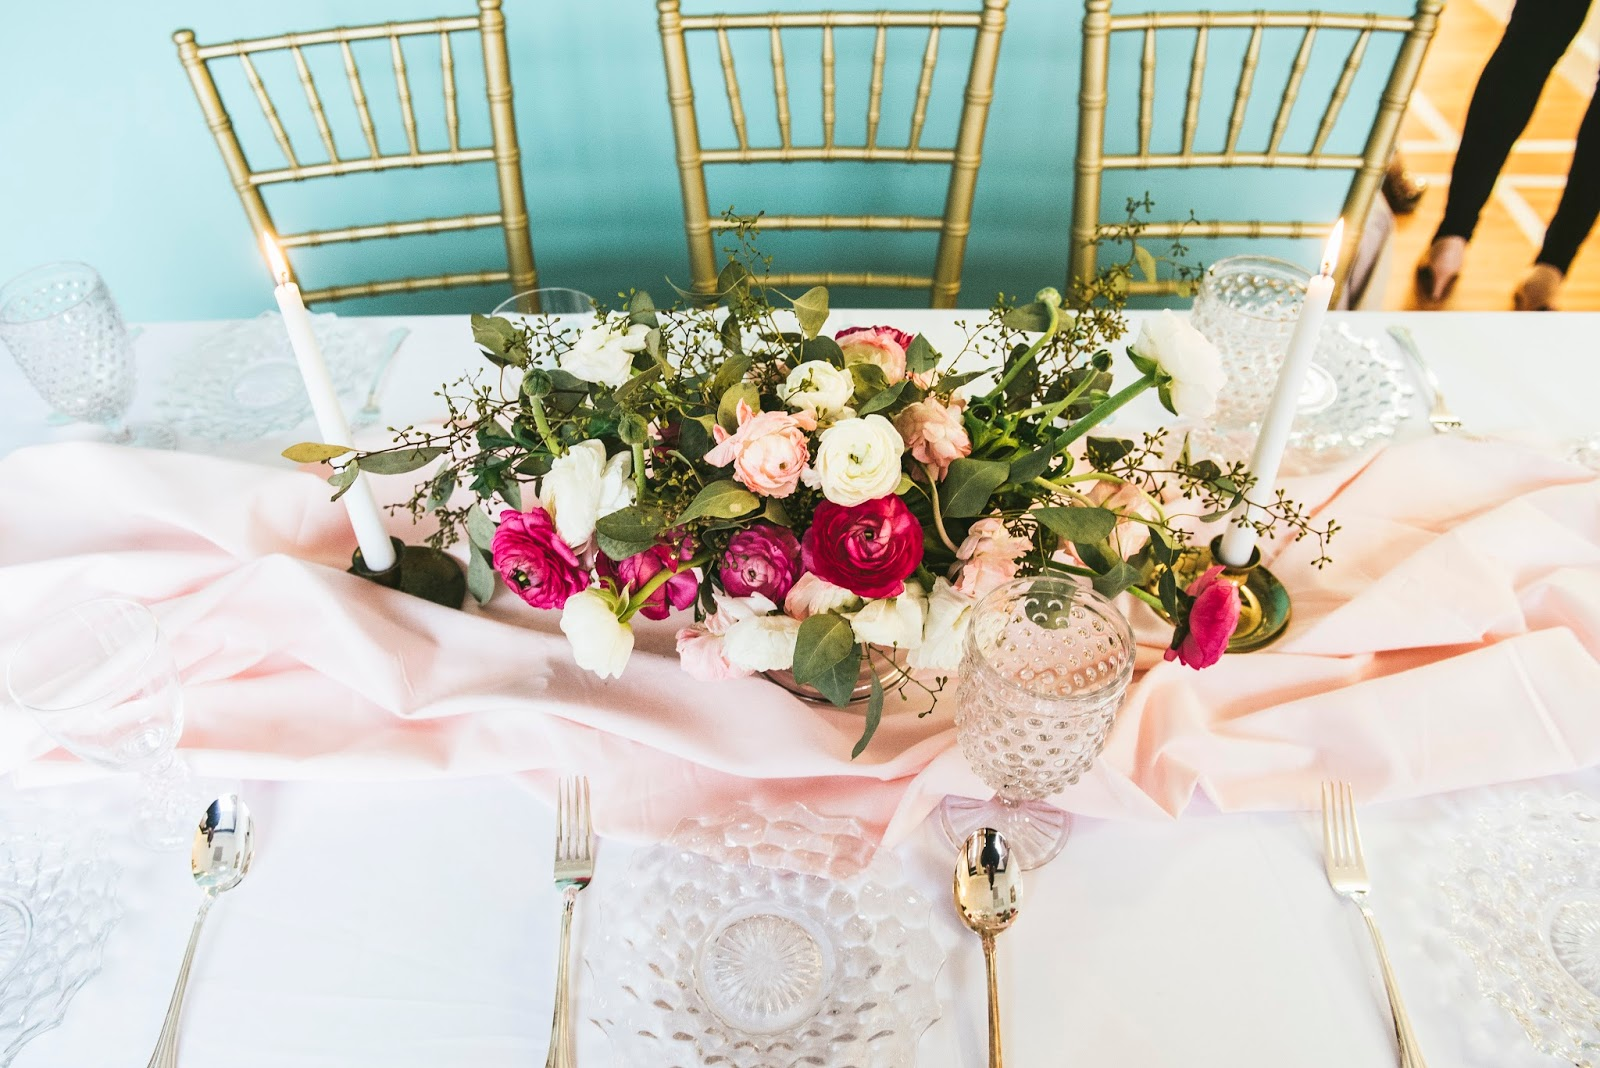 shades-of-pink-romantic-styled-tablesetting-with-pink-draped-table-runner